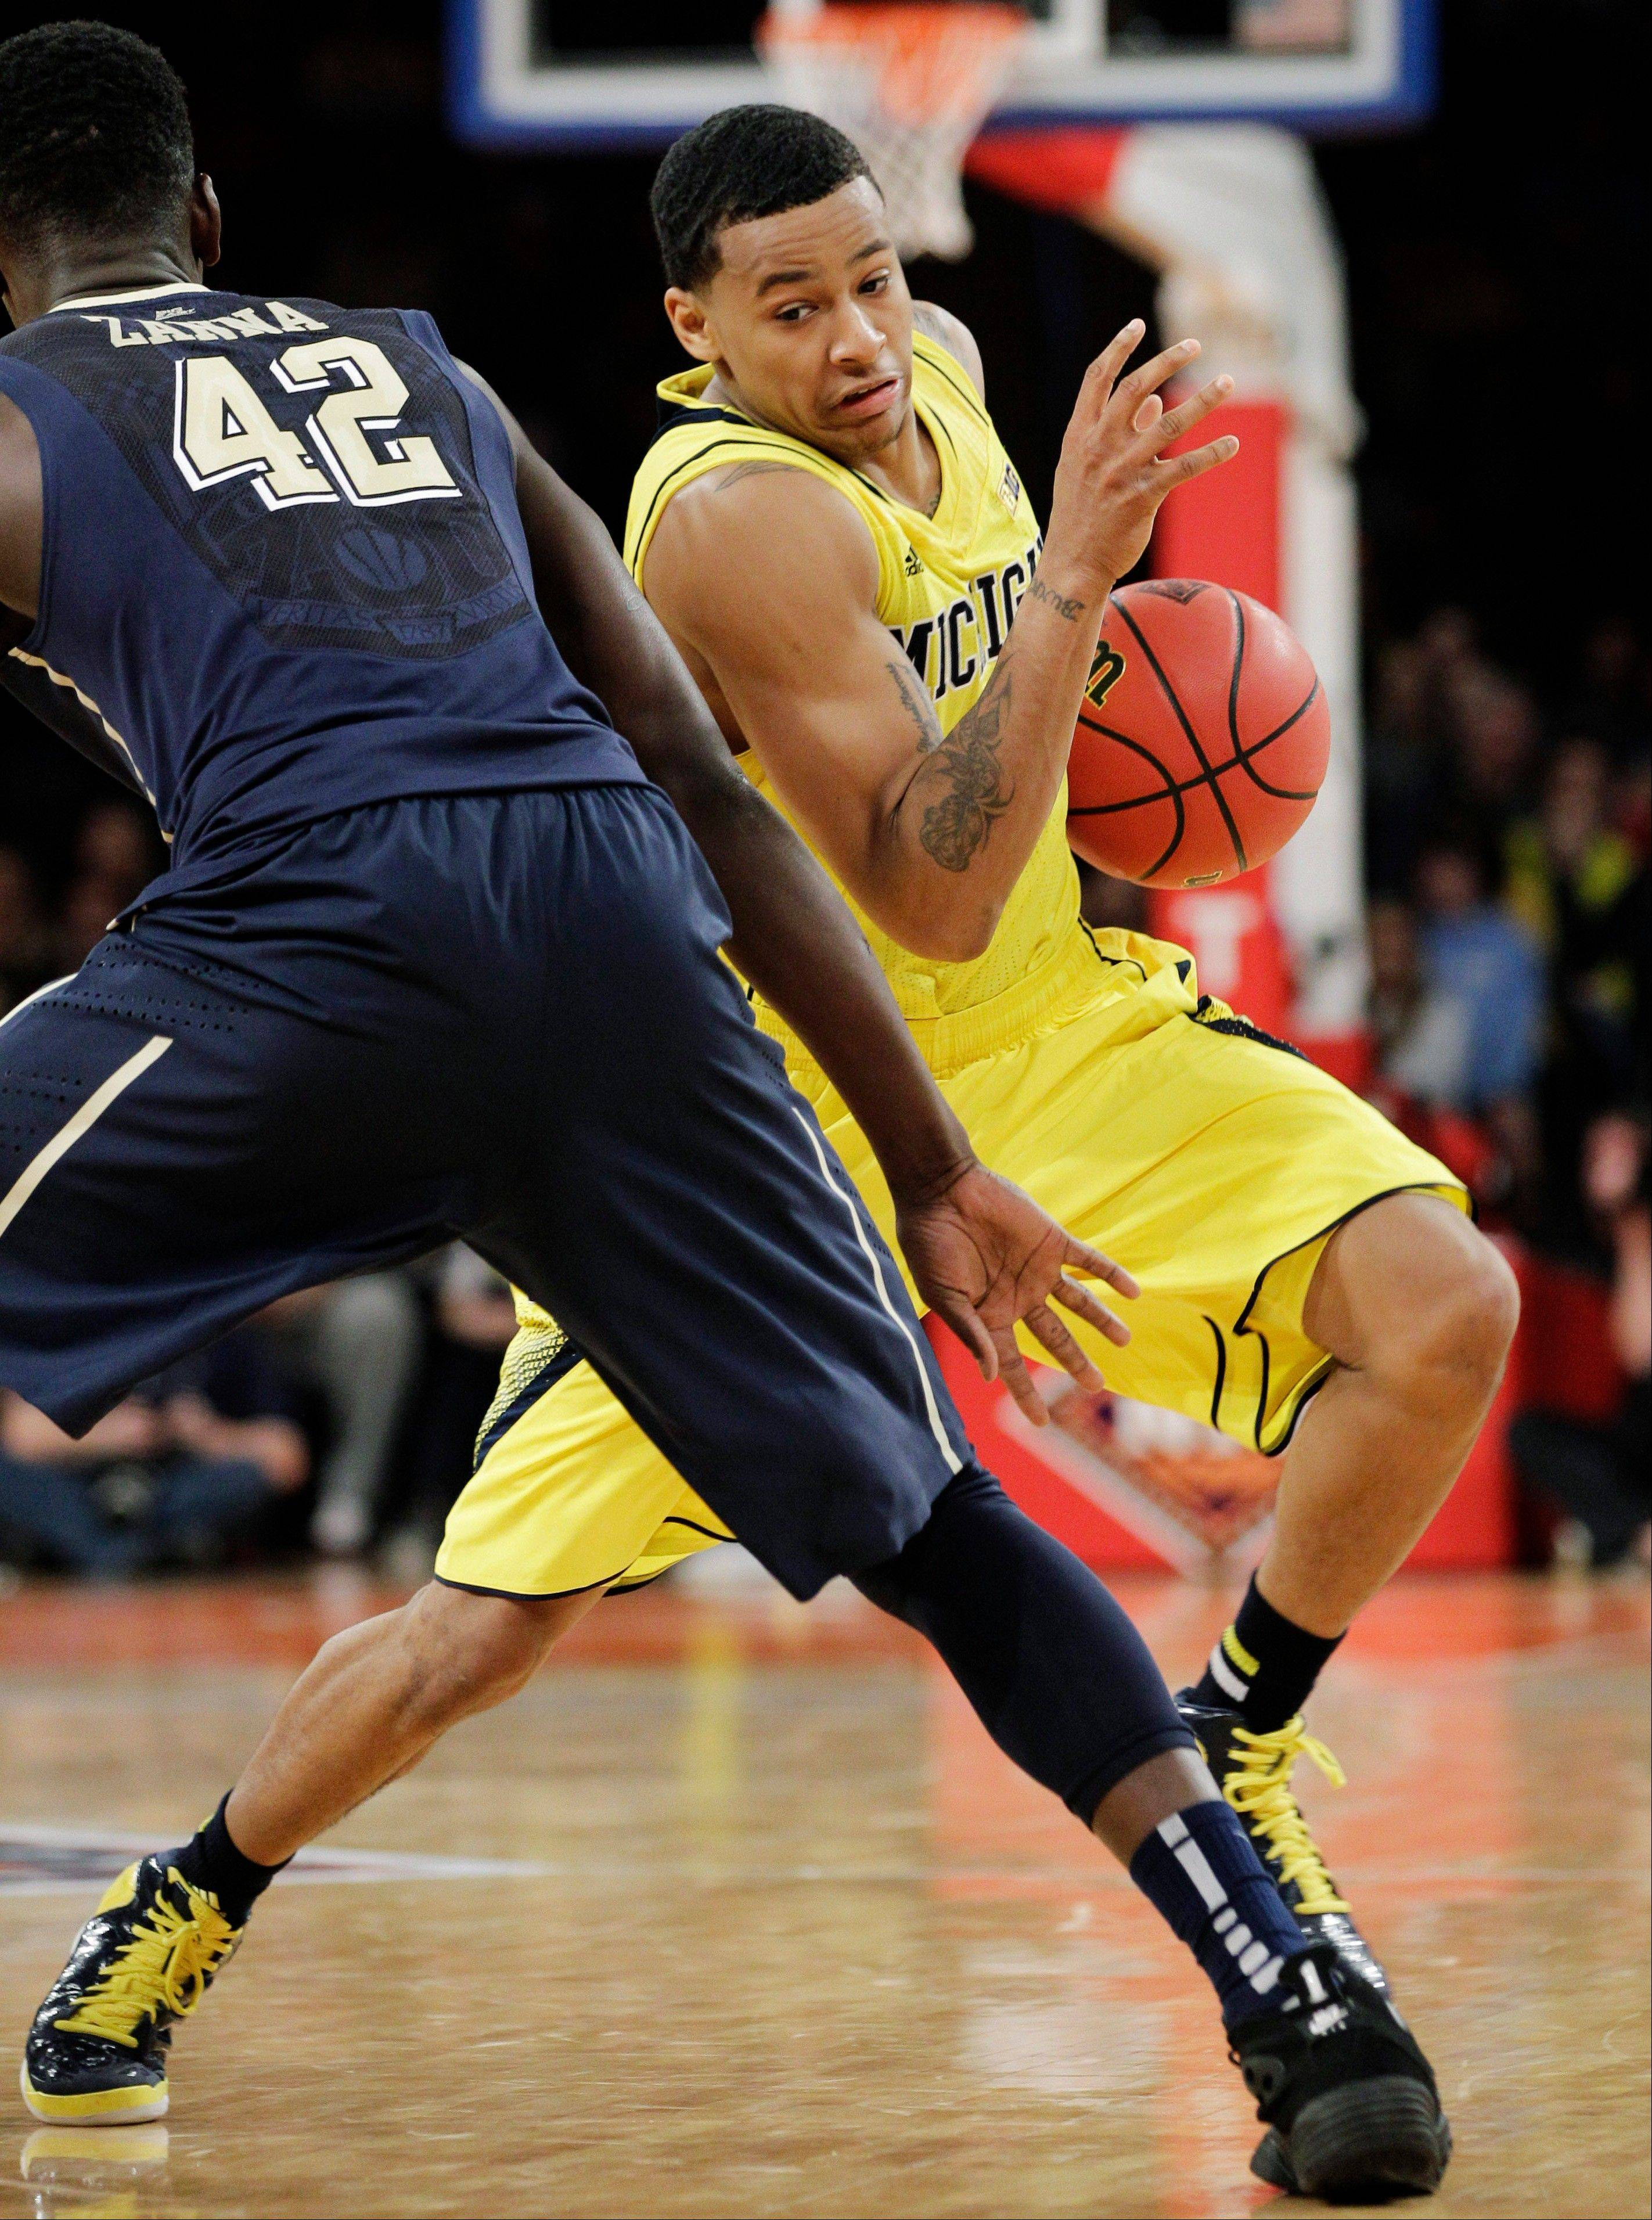 Michigan guard Trey Burke drives around Pittsburgh forward Talib Zanna in the first half Wednesday in the NIT Season Tip-Off at Madison Square Garden in New York.